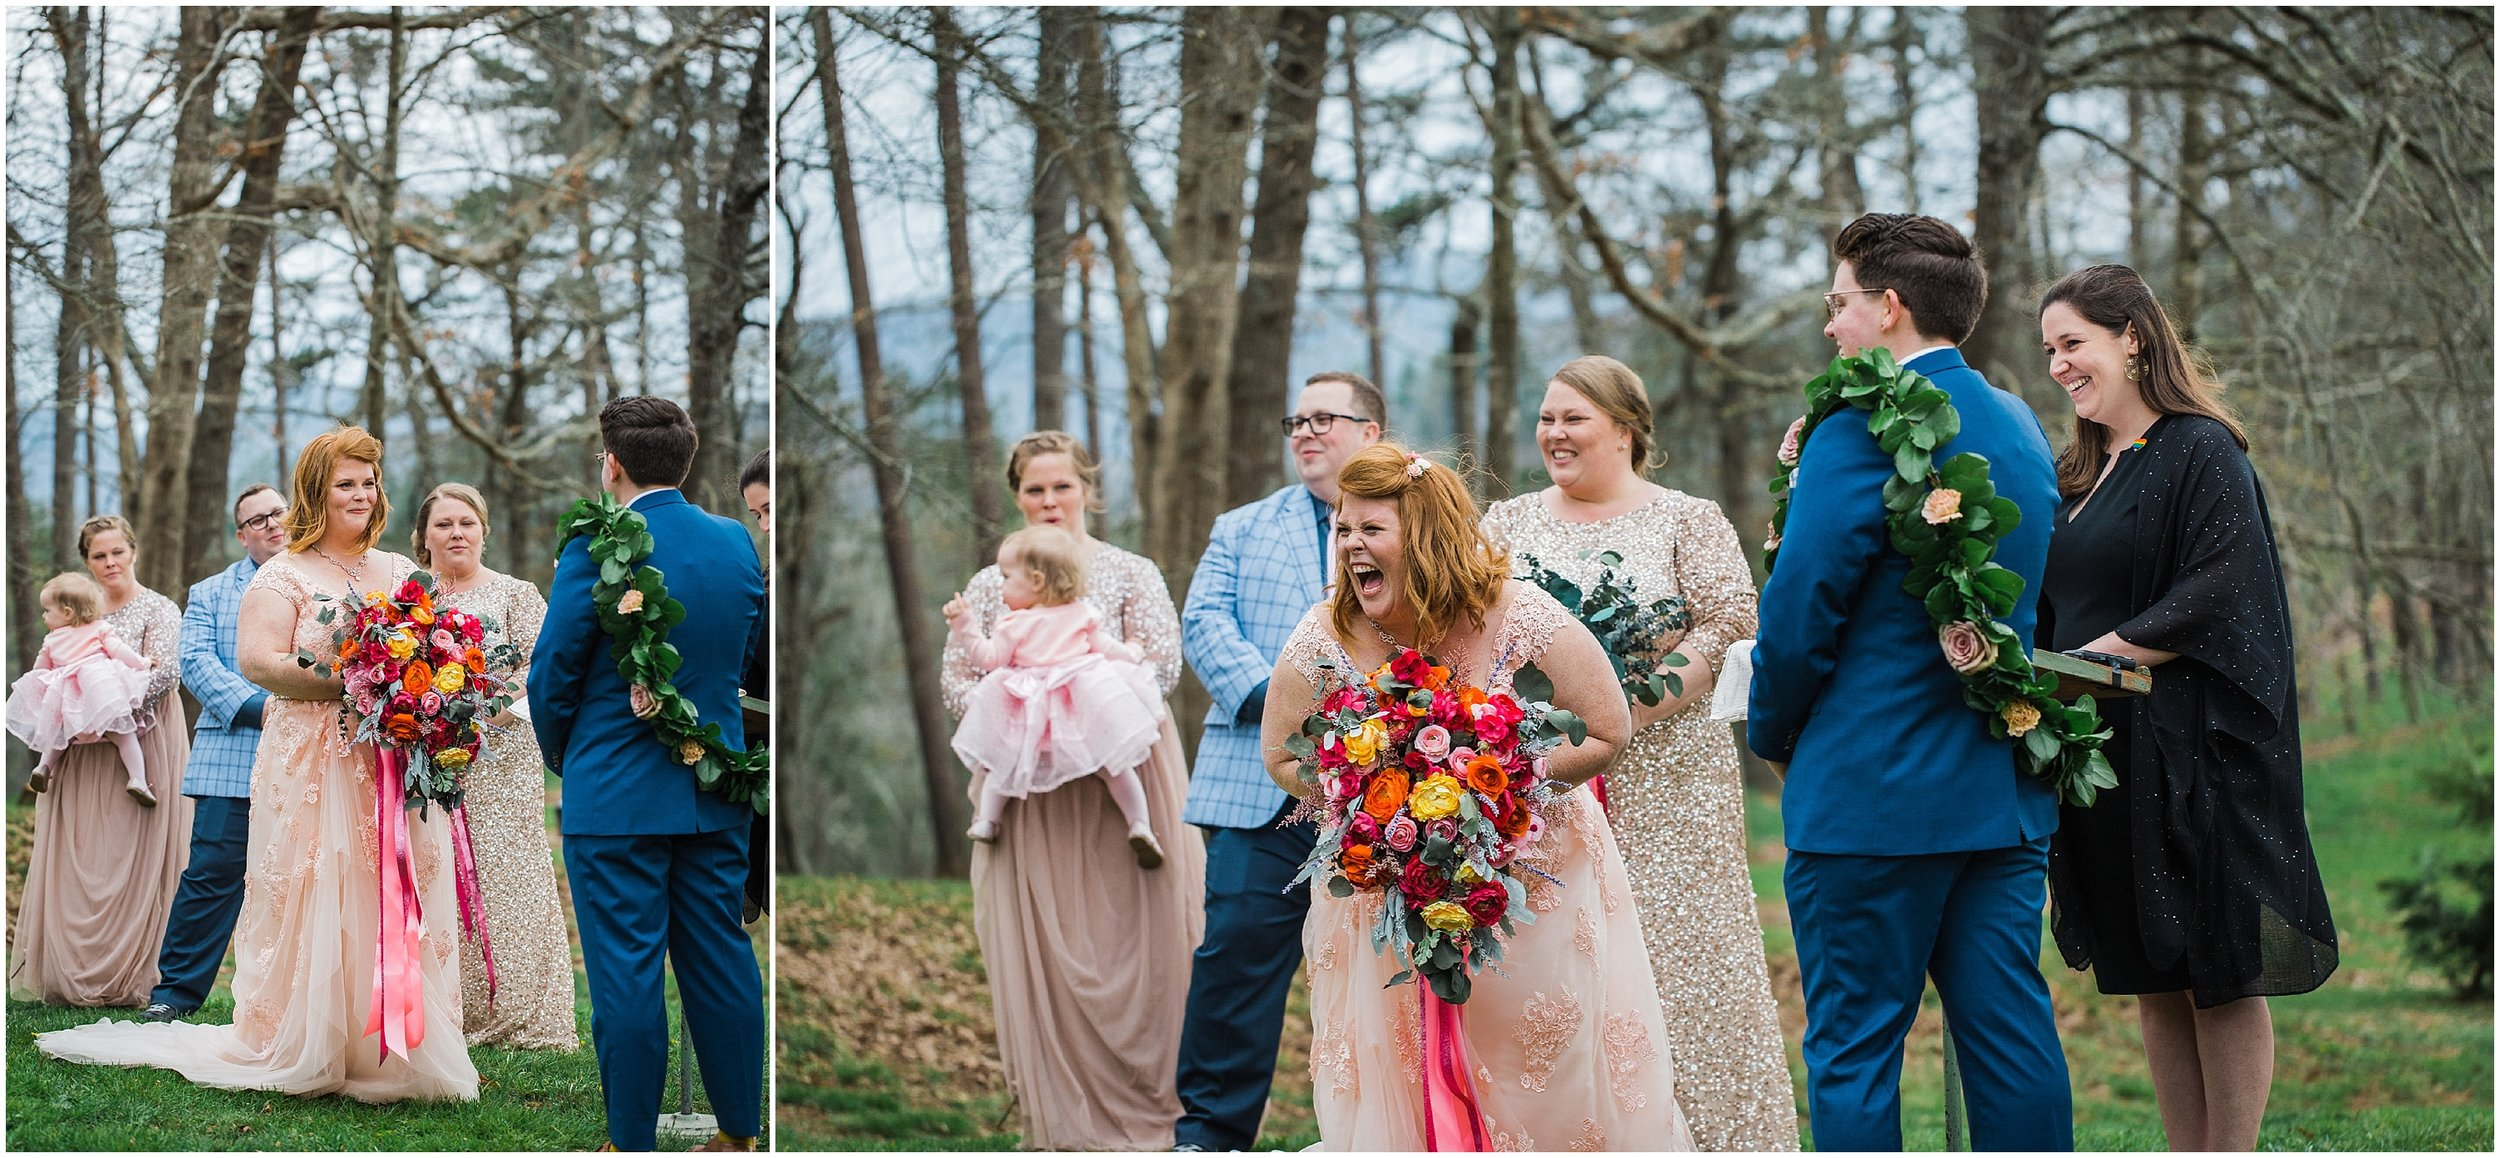 Heather+Rah Wedding Highlights-179.jpg